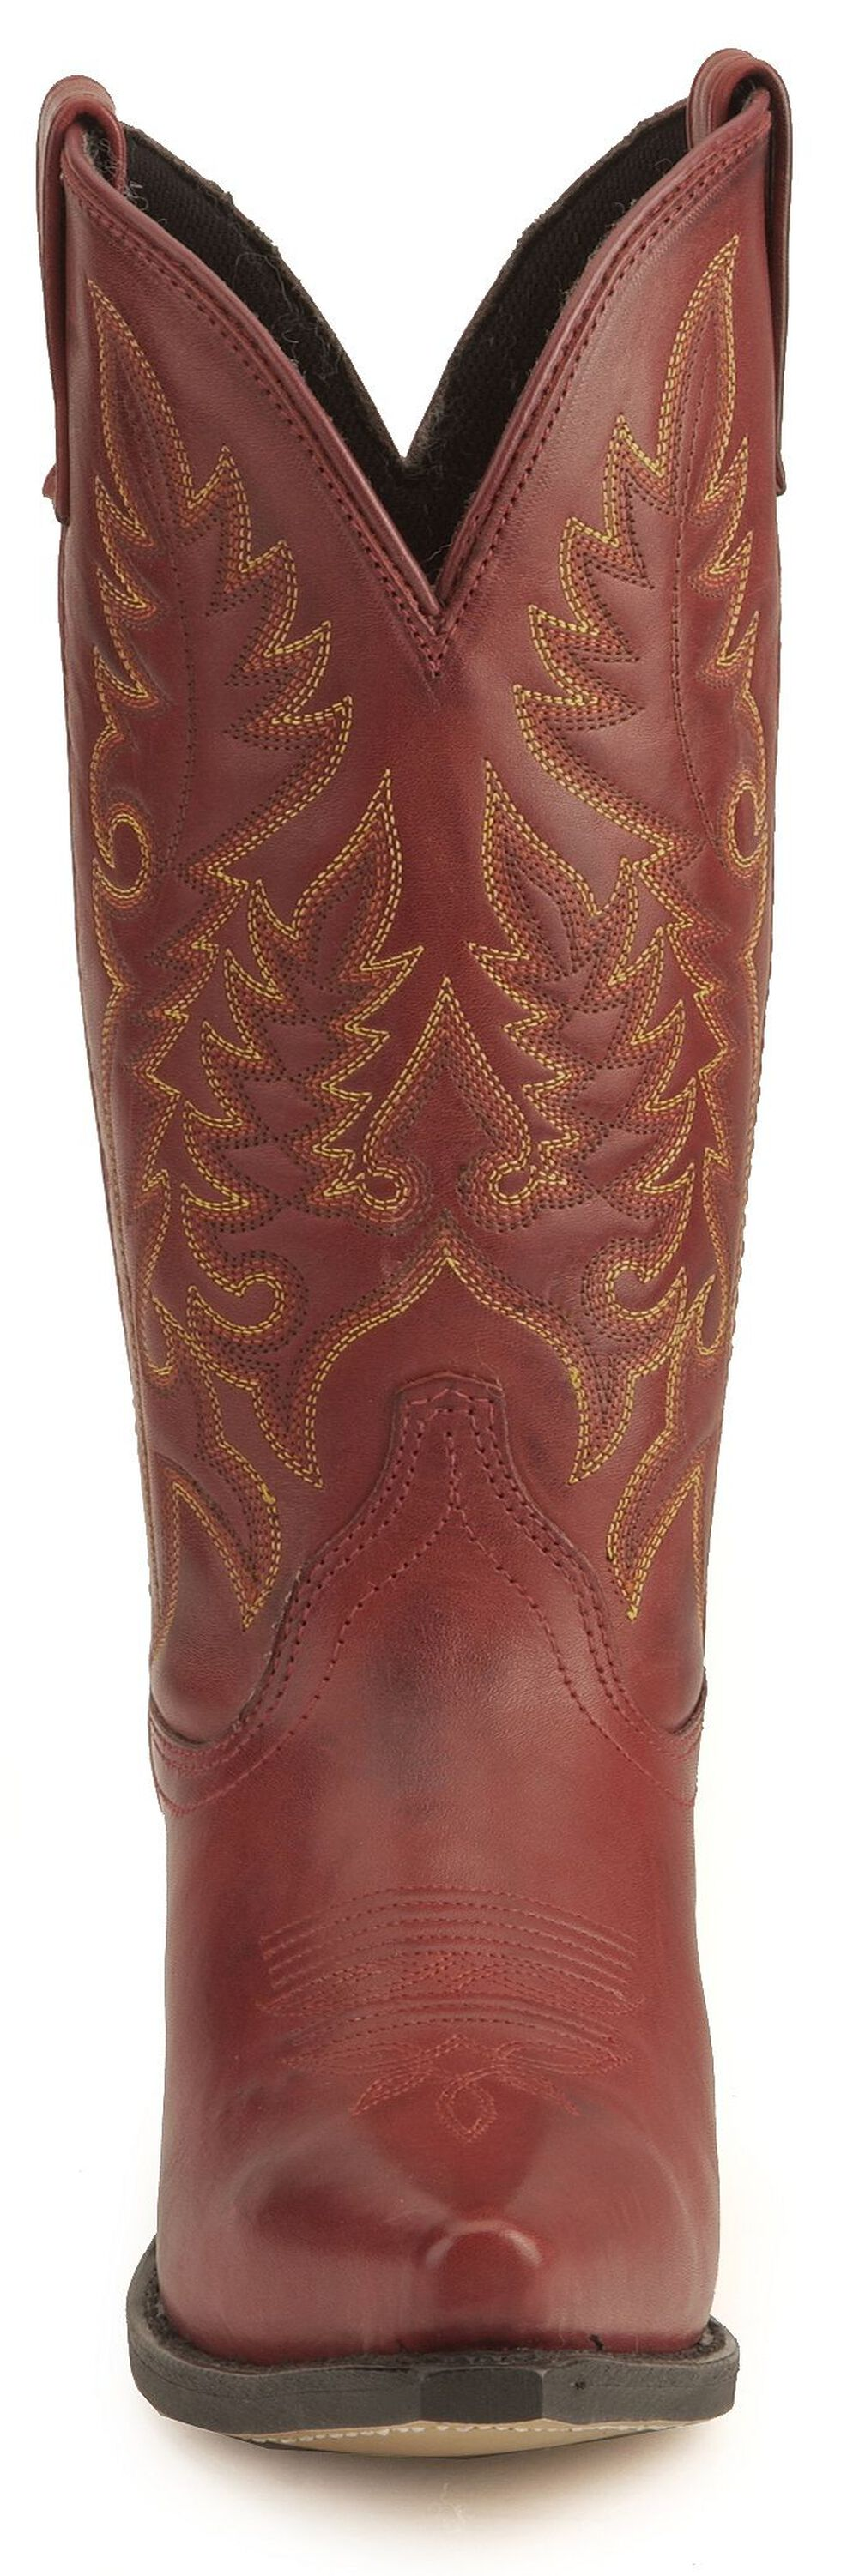 Laredo High Heel Red Cowgirl Boots - Snip Toe, Red, hi-res